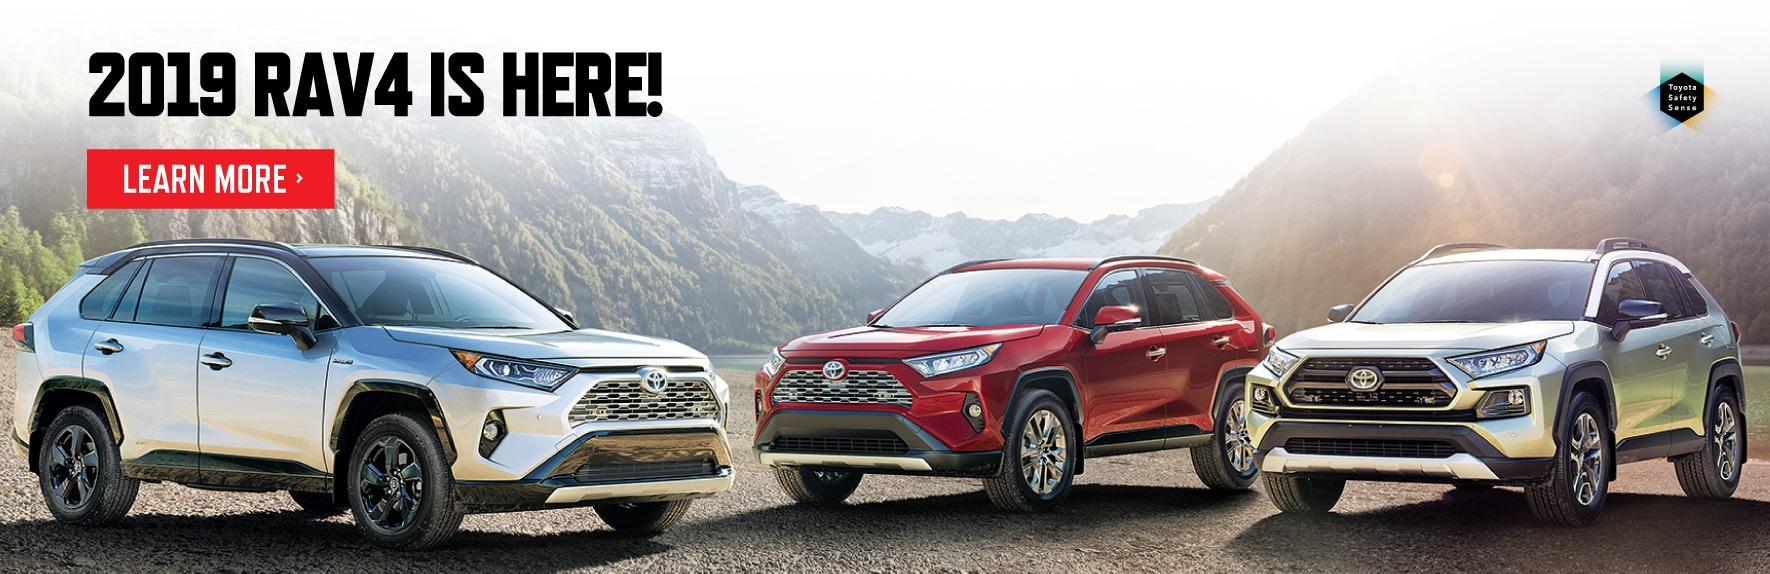 2019 Toyota RAV4 in Toronto Ken Shaw Toyota dealership sale